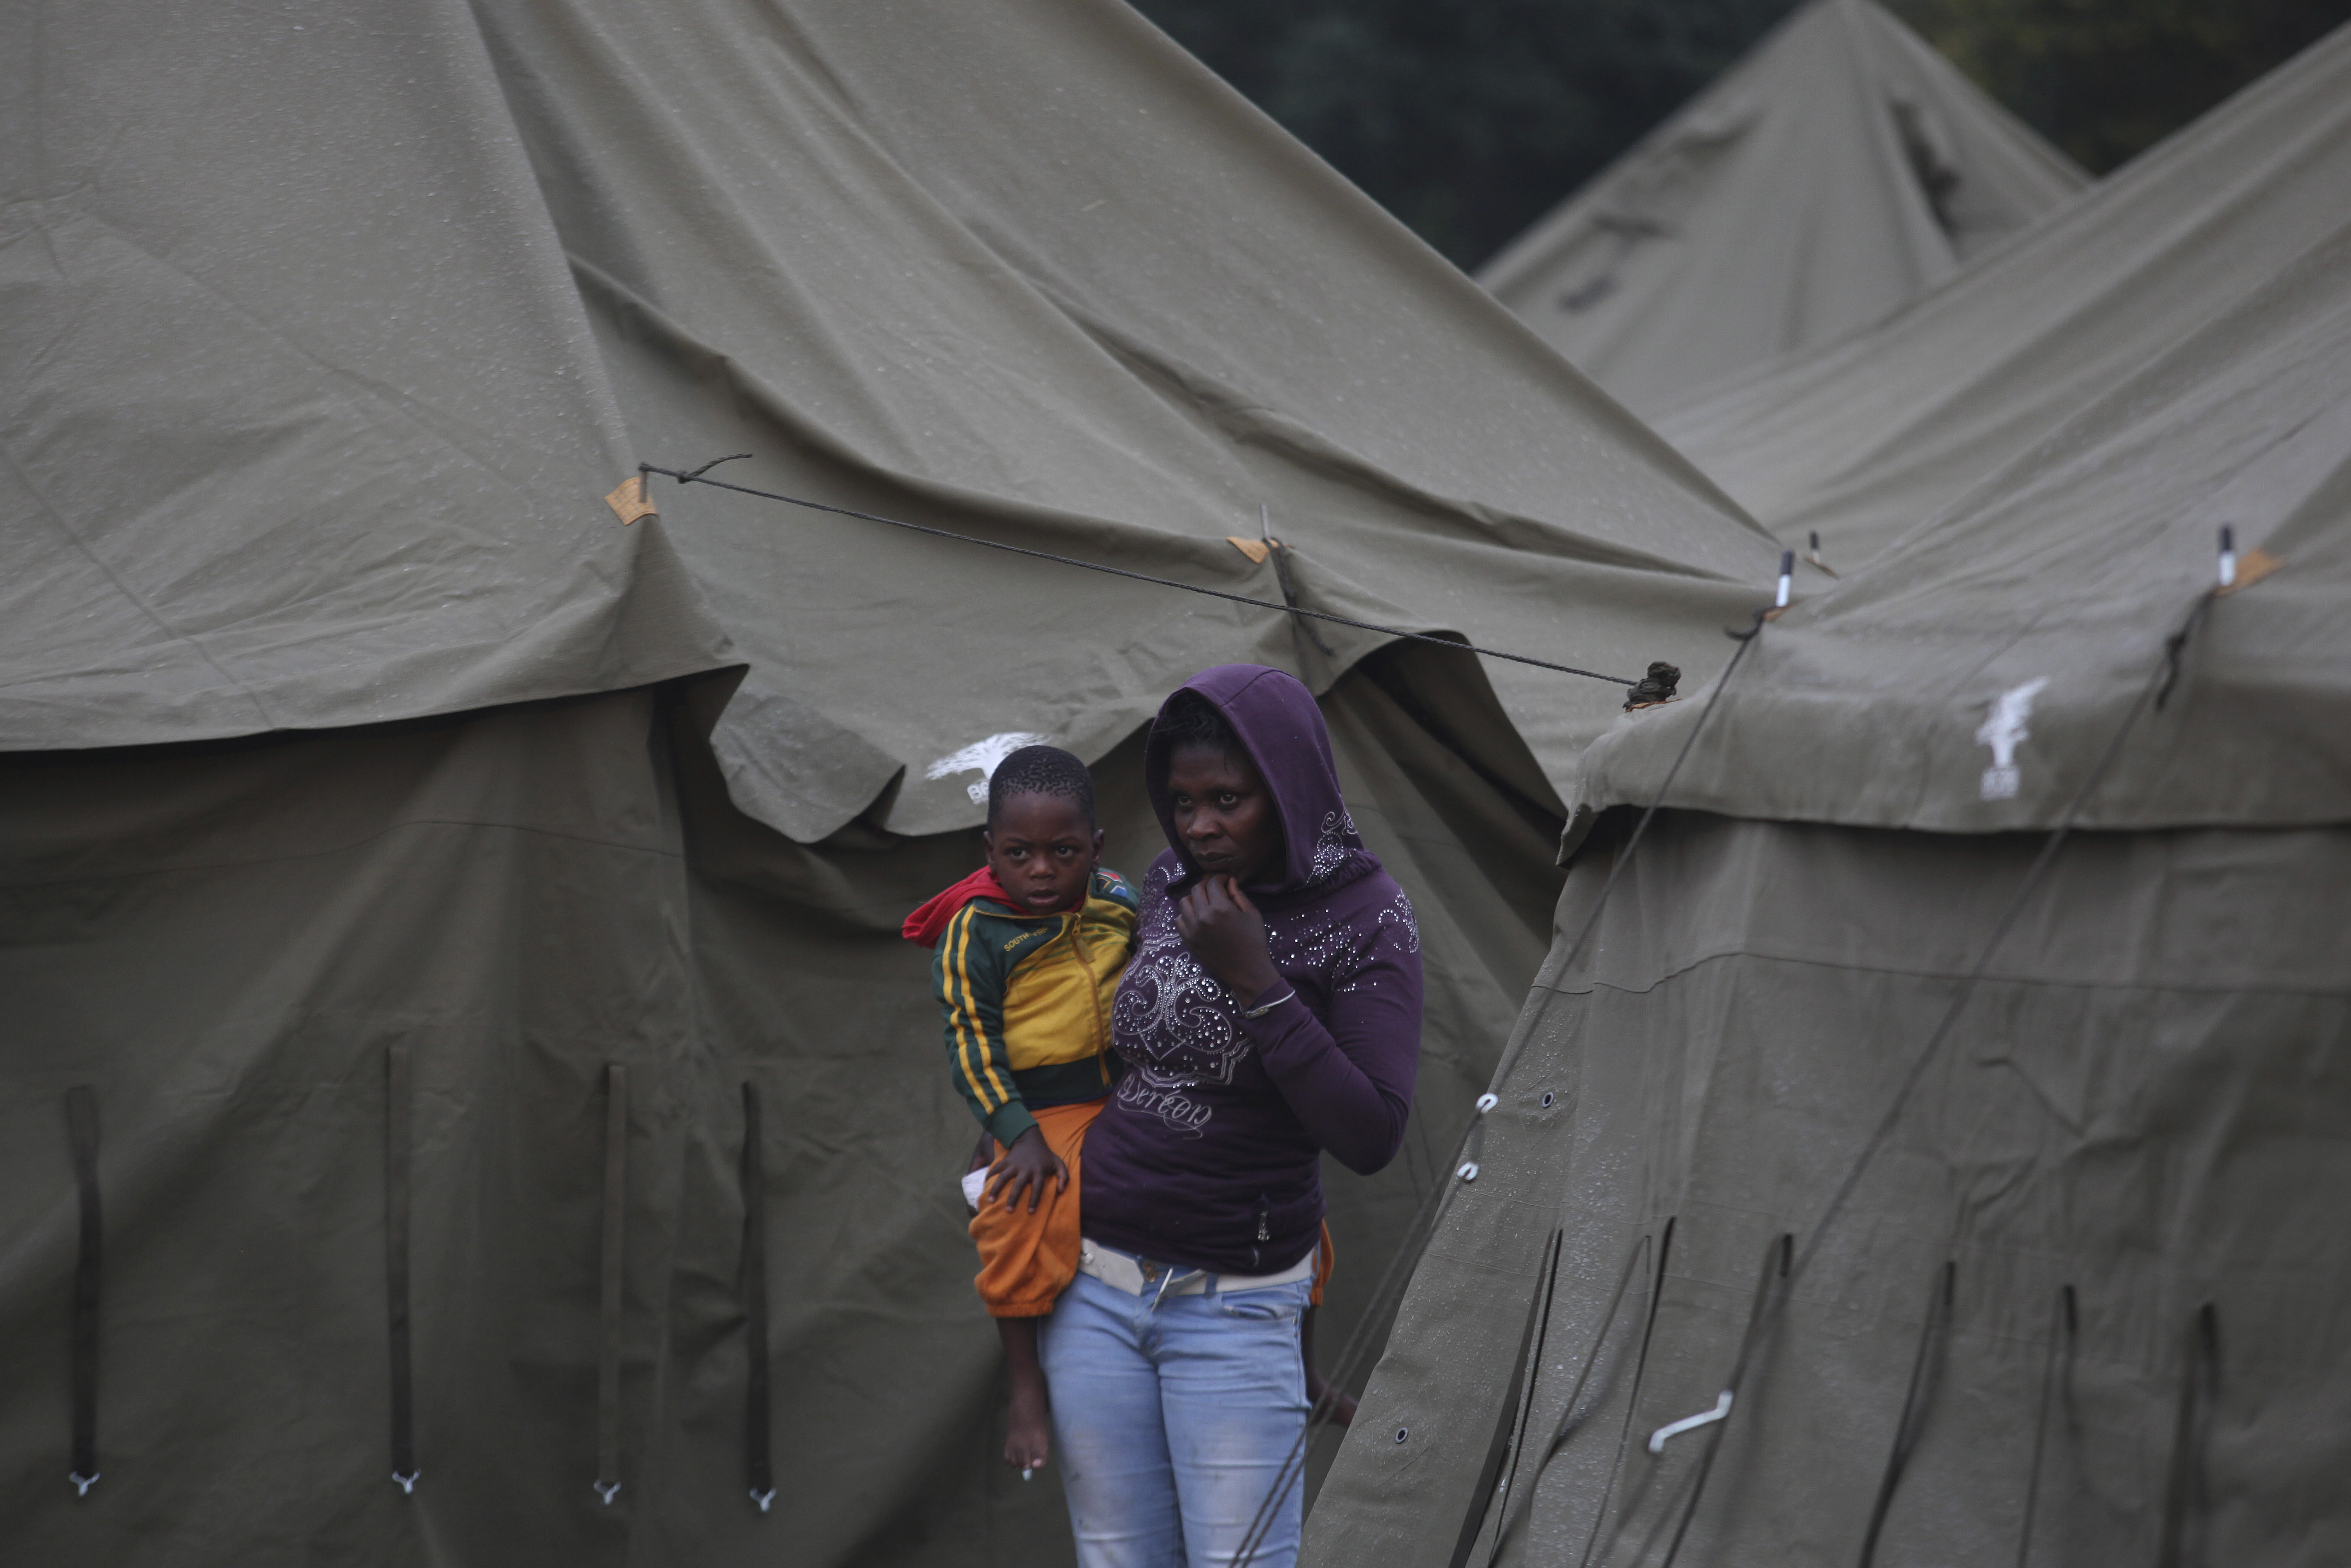 A woman carries her child at a temporary shelter set up for foreign nationals fleeing attacks from South Africans in and around Johannesburg Sunday, April 19, 2015. Mobs in South Africa attacked shops owned by immigrants in poor areas of the city overnight following similar violence in another part of the country that killed at least six people, according to media reports. (AP Photo/Denis Farrell)